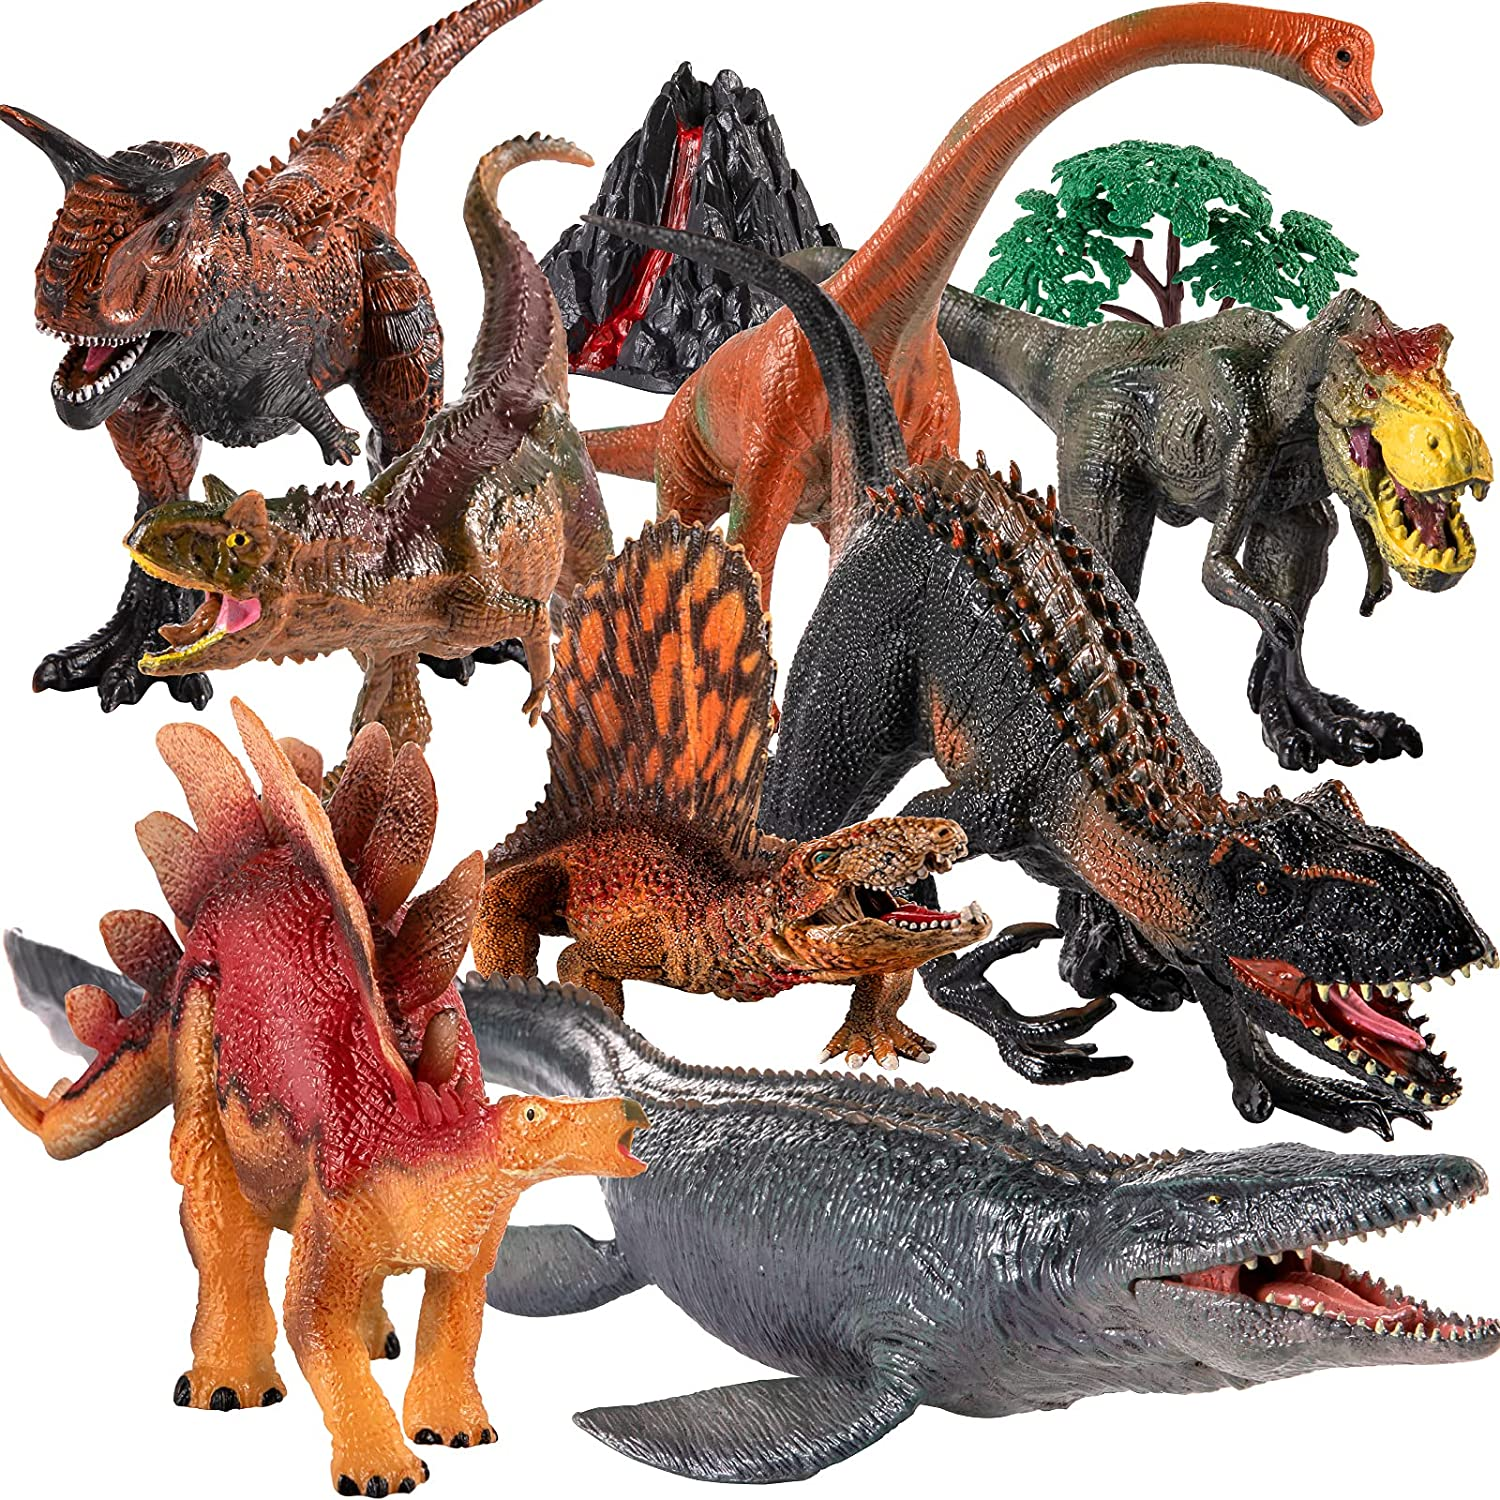 8 Pcs Large Dinosaurs Toy for Toddlers Jumbo Dinosaur Toys for Kids 3 5 , Dinosaur Big Toys Realistic Looking Giant Dinosaur Toys Figure Set , Toddlers and Dinosaur Lovers, Birthday Party Favor Toys